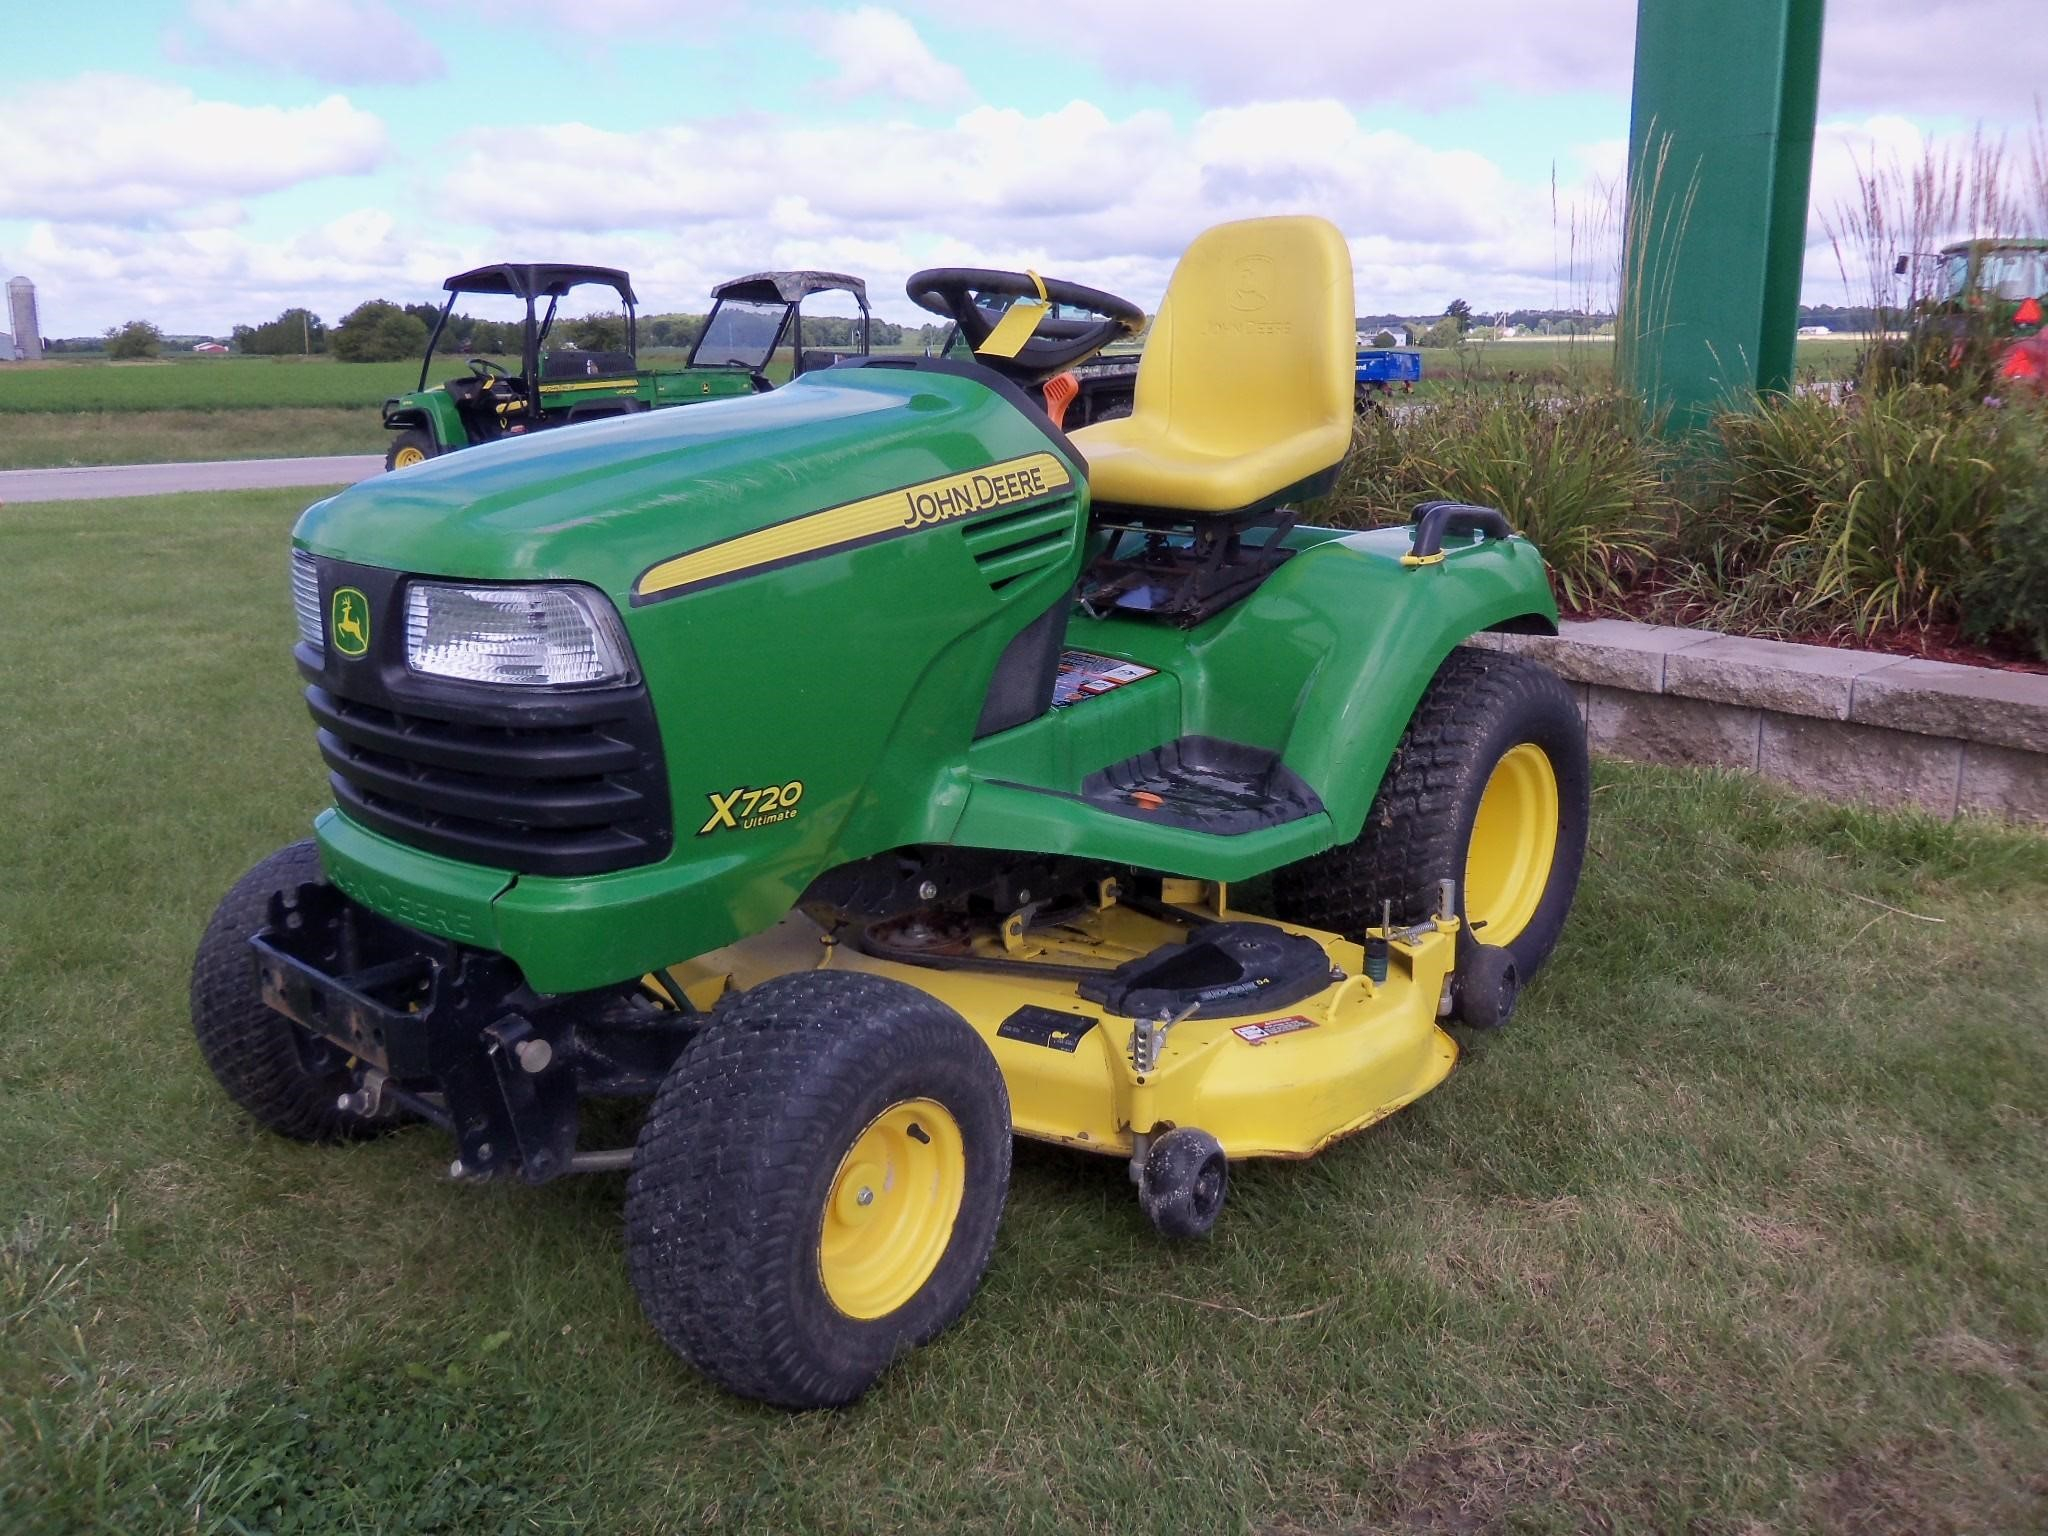 wisconsin ag connection john deere x720 riding lawn mowers for sale. Black Bedroom Furniture Sets. Home Design Ideas